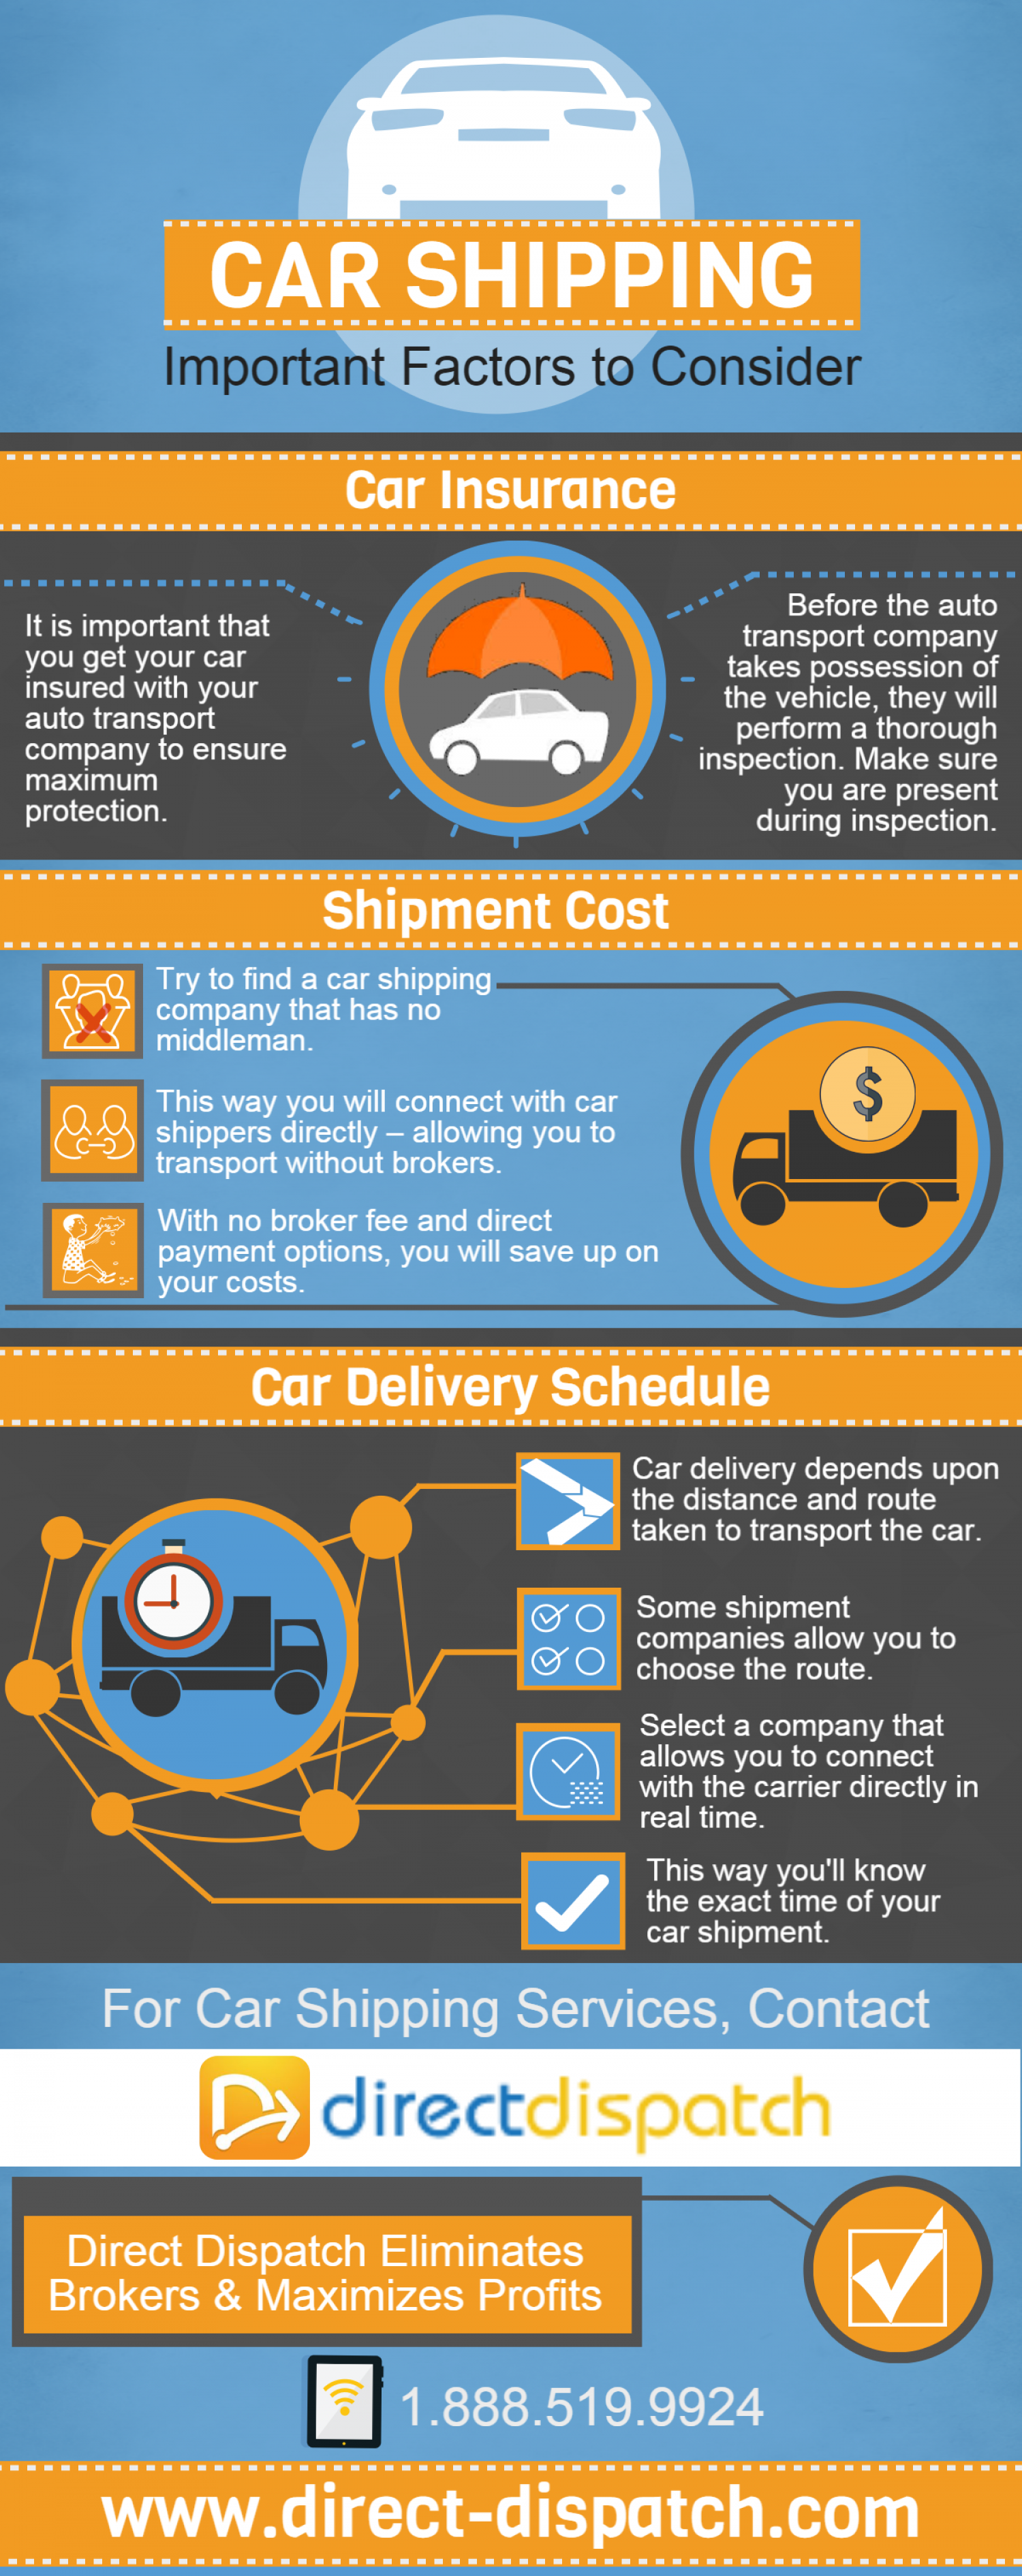 CAR SHIPPING - important factors to consider Infographic